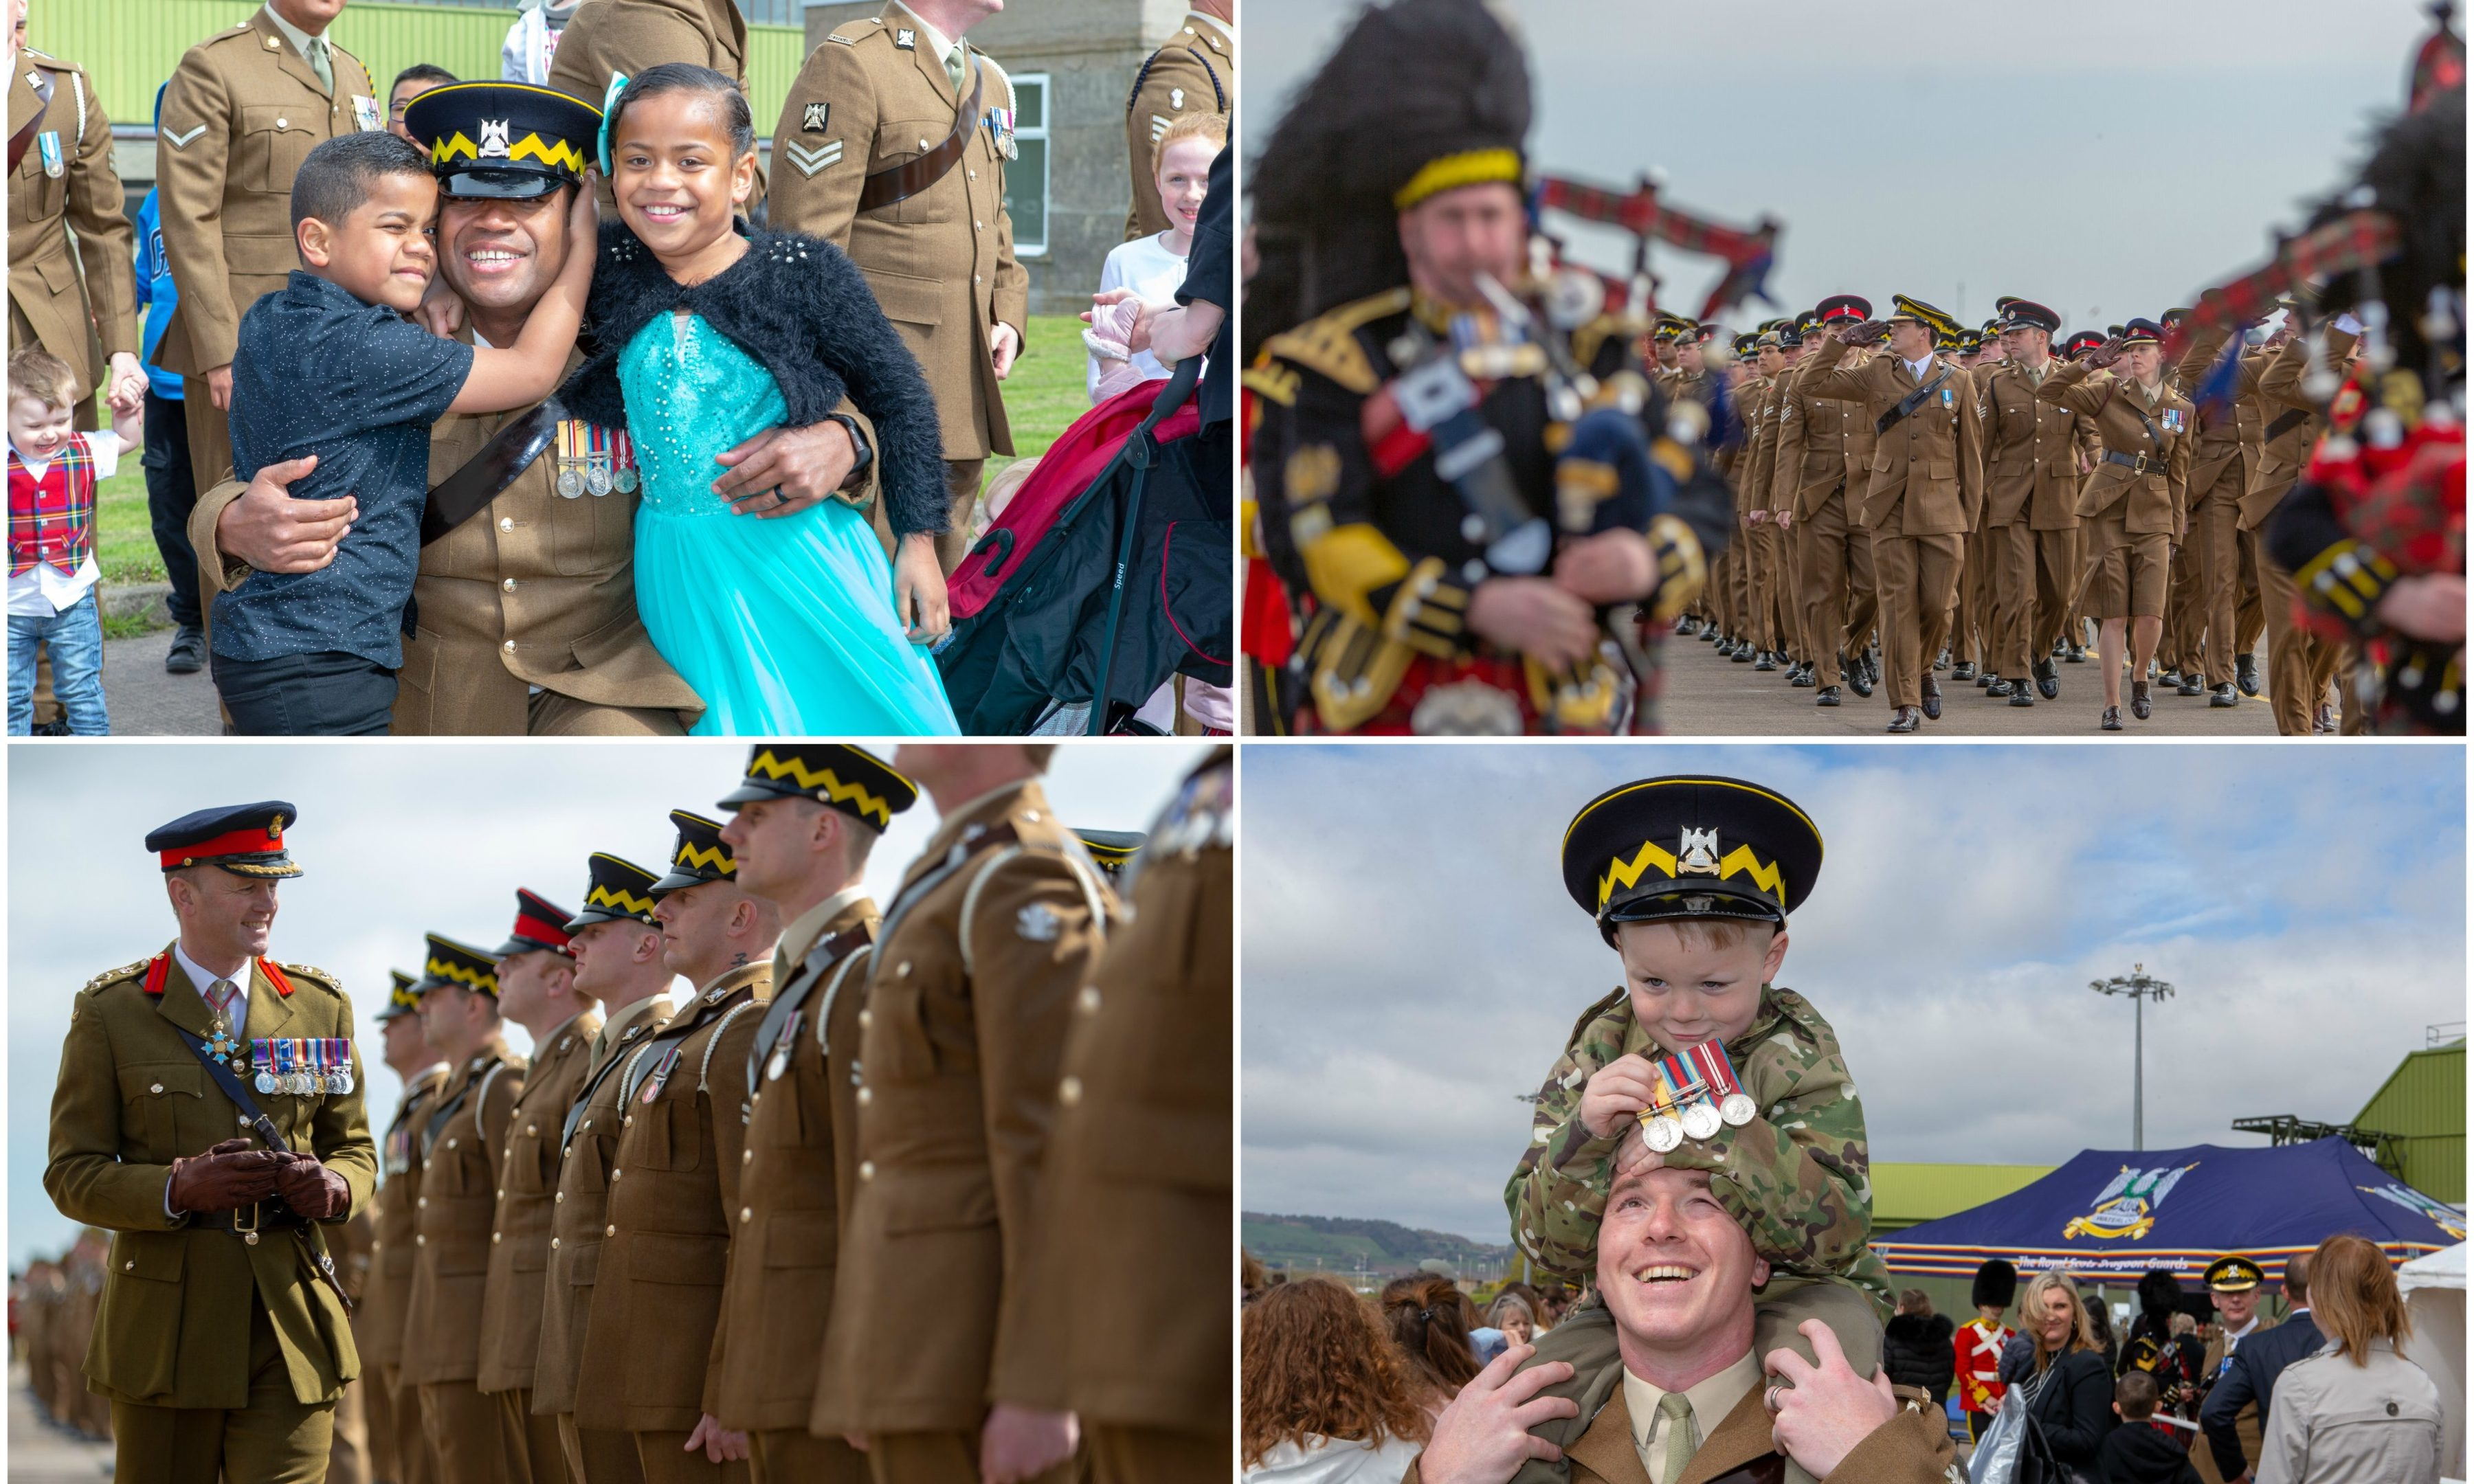 Members of the Royal Scots Dragoon Guards have returned from a six-month tour to maintain peace and stability in Cyprus